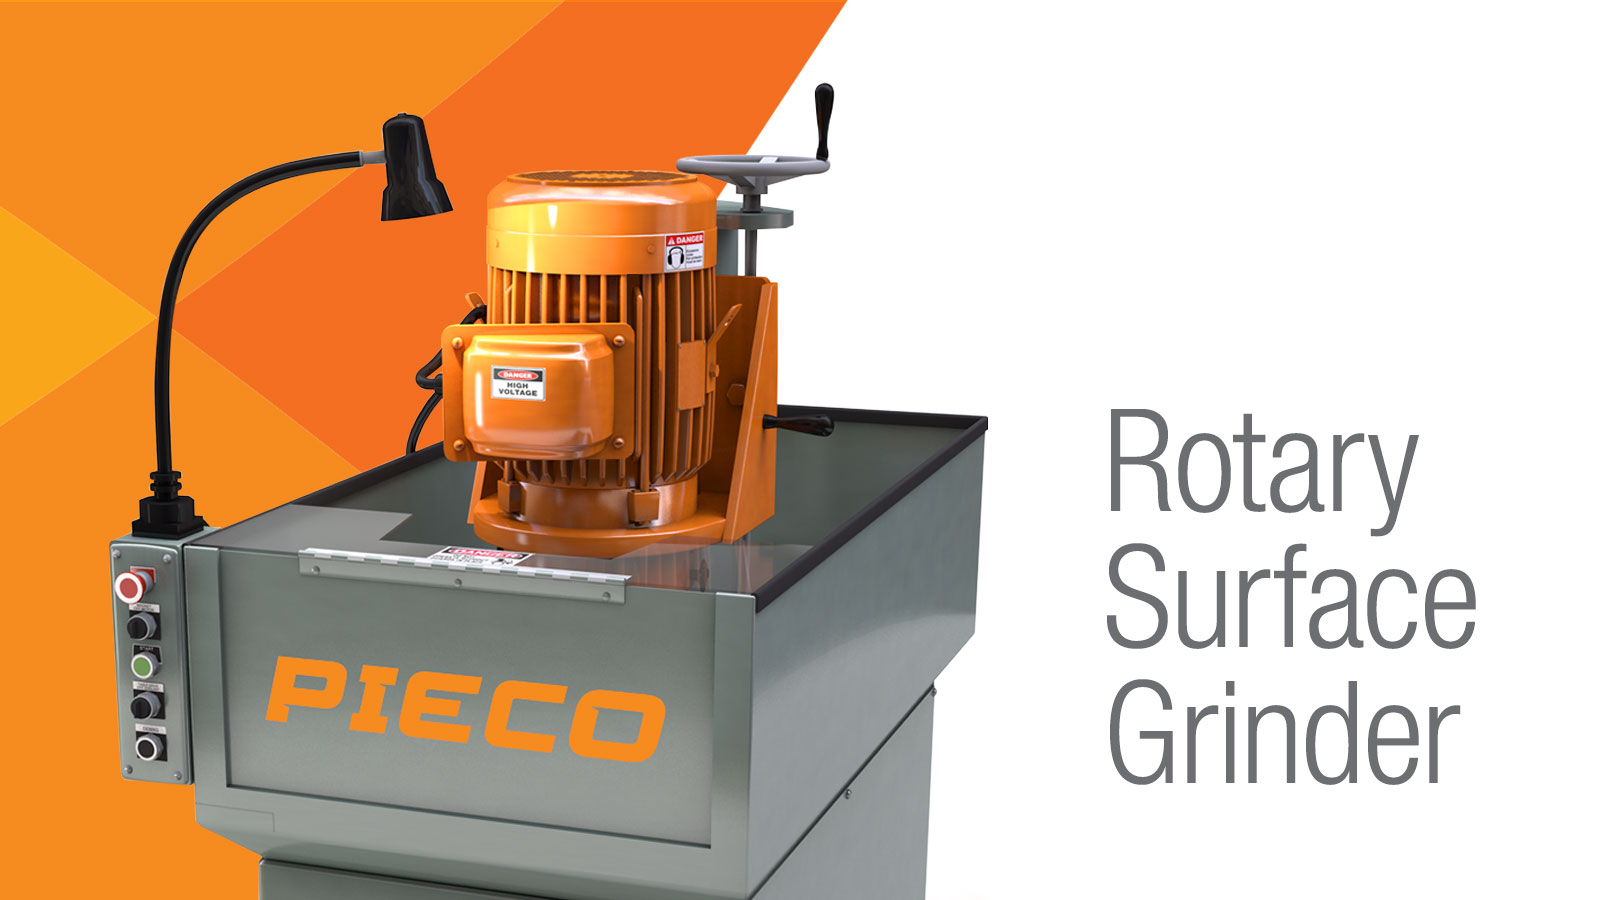 PIECO Rotary Surface Grinder home page graphic